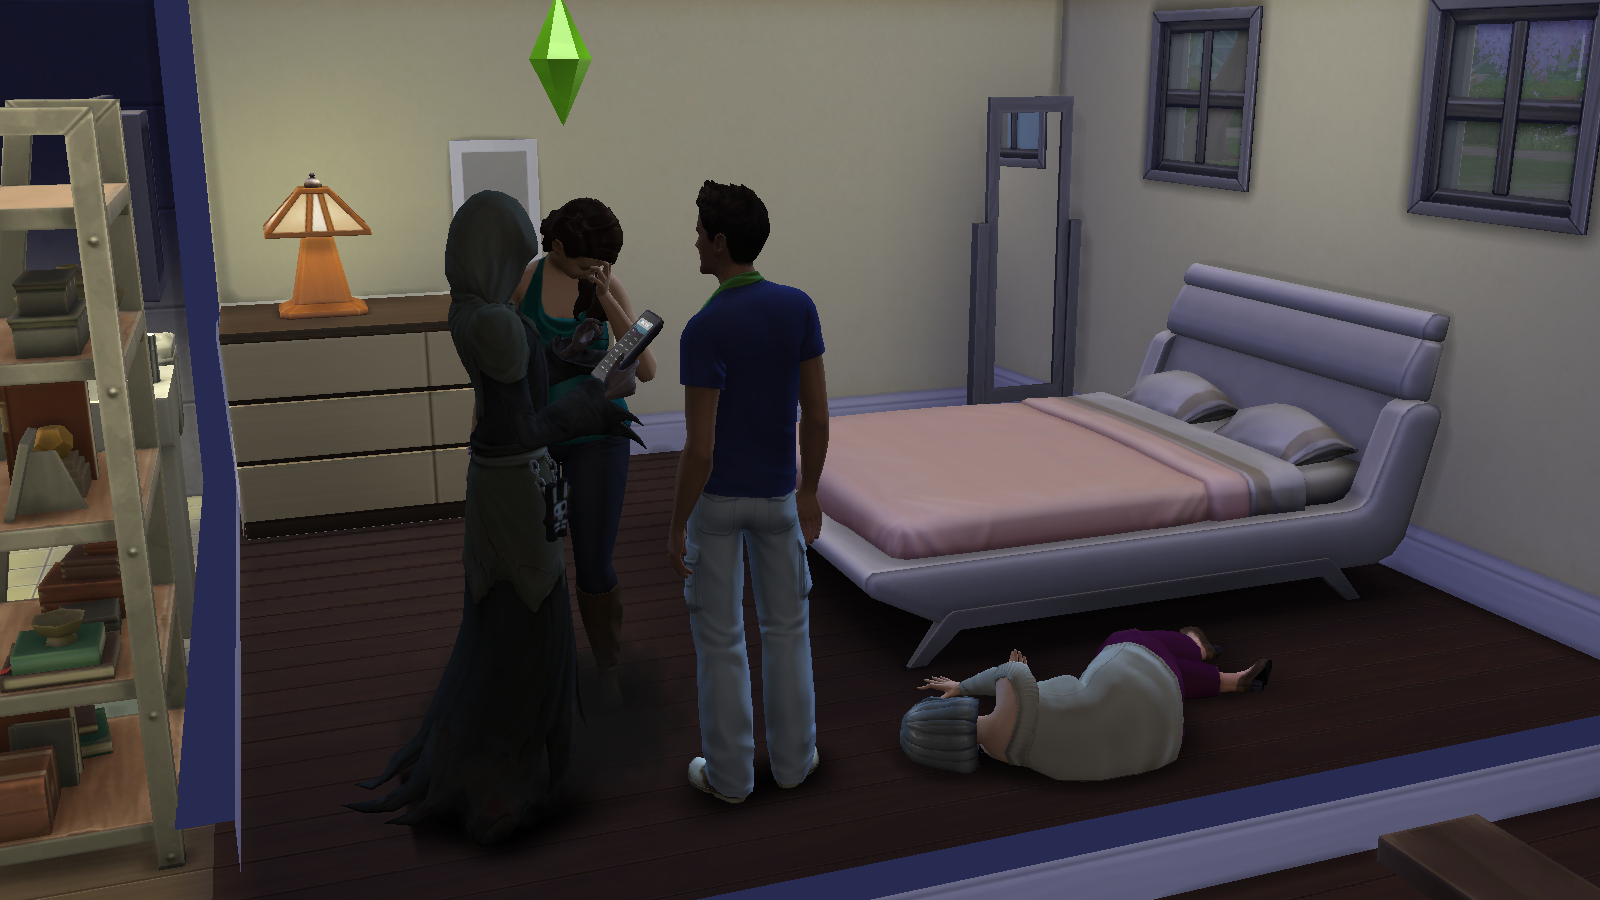 dating death sims 3 A guide to finding love in the sims 3 help your sims get a girlfriend or boyfriend, romantic interest, fiancee, and learn about the options for having a wedding.